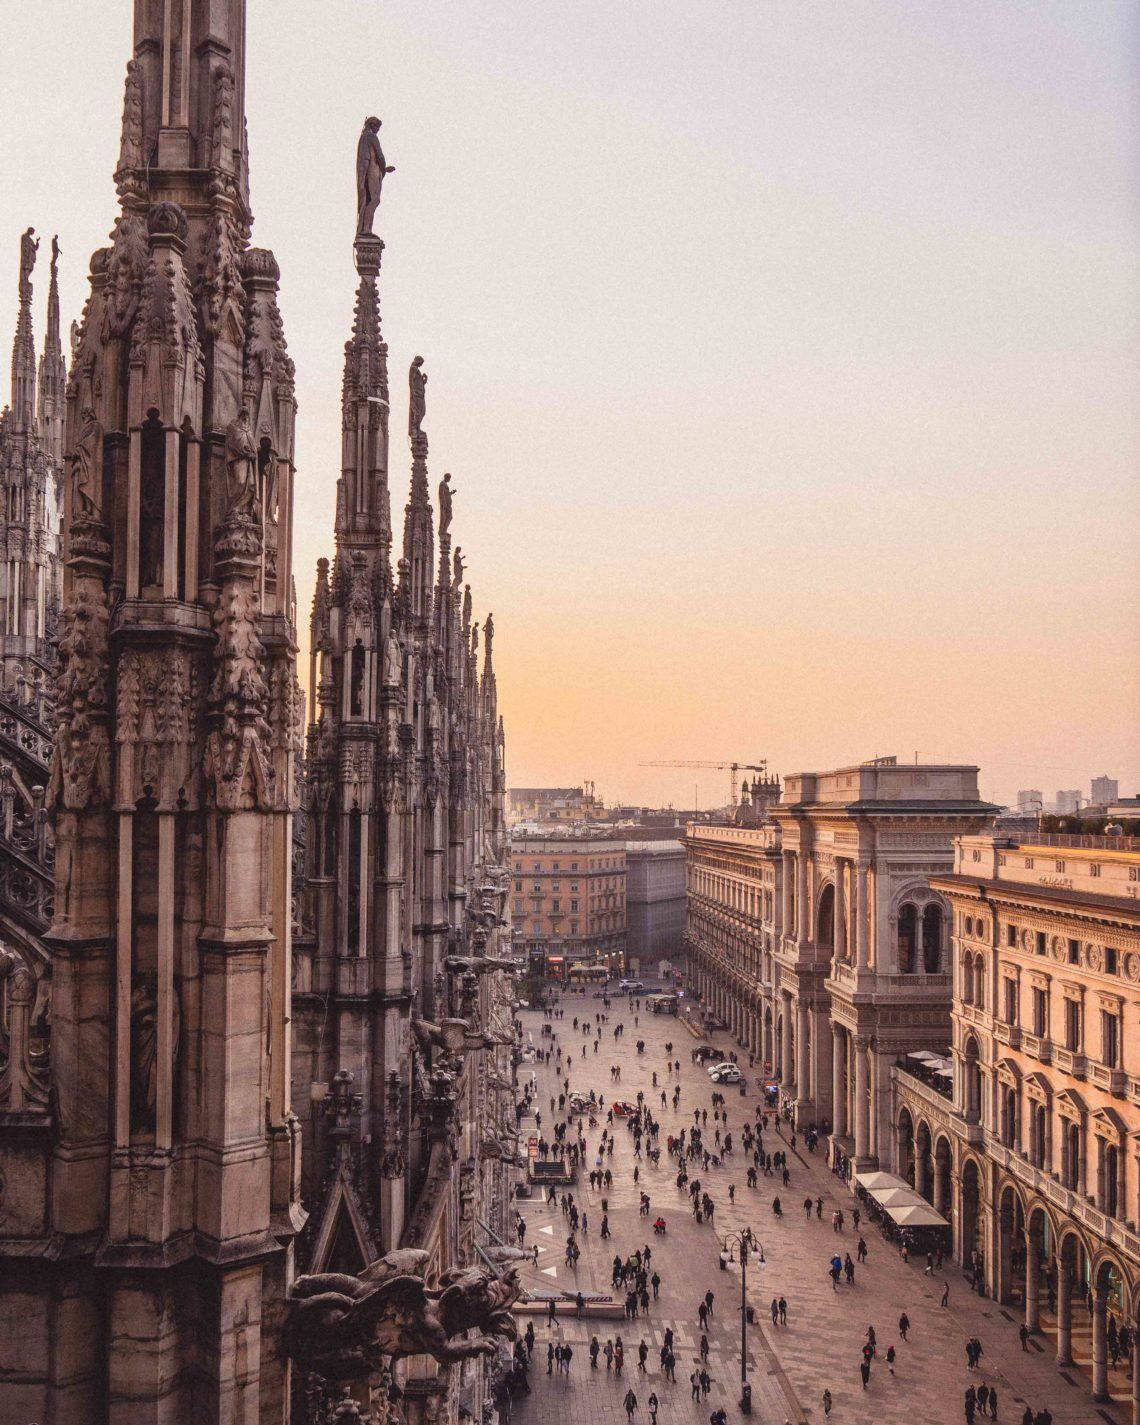 Looking for the best view in Milan? Here's how to visit the Duomo di Milano rooftop terrace (Milan's Cathedral). As one of the Lombardy capital's must see attractions, this guide will tell you the best time to go, what you can expect to see, and a little history of the cathedral